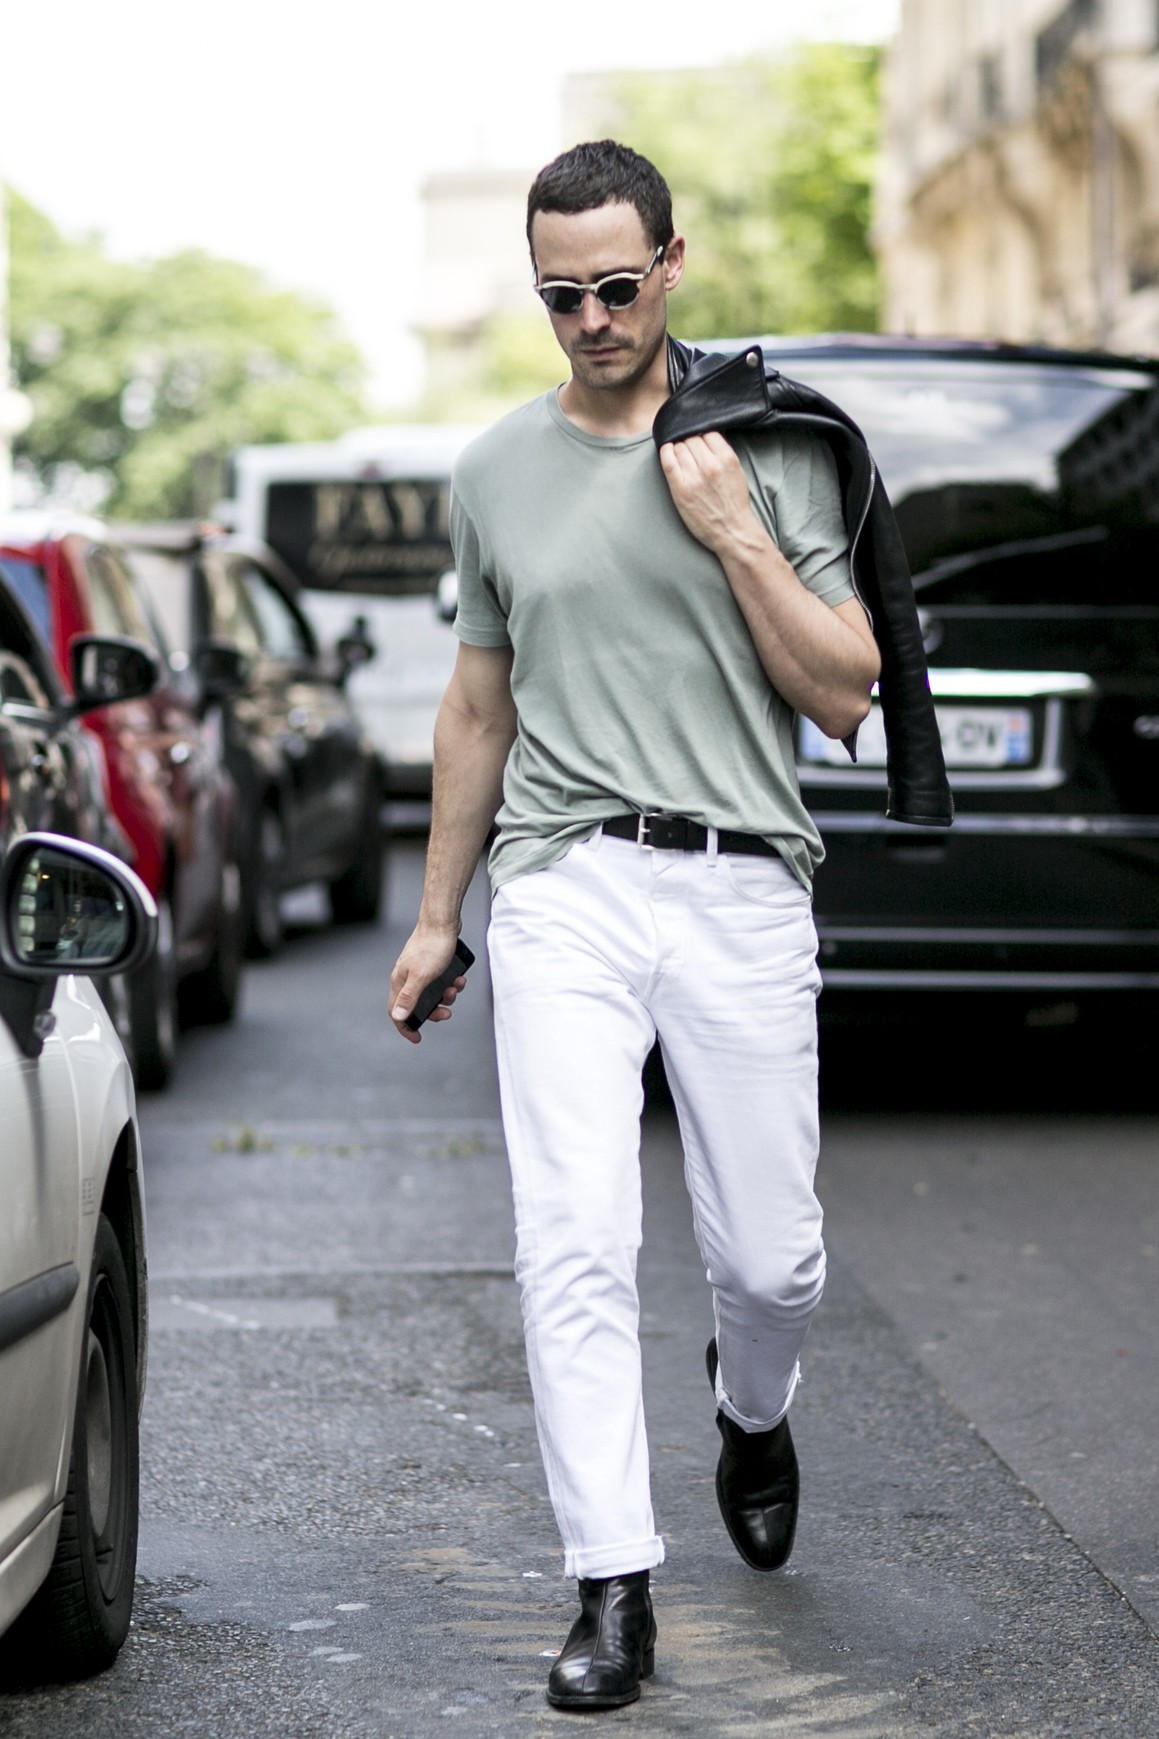 Mens Fashion This Summer Took A More Casual Turn As Strapped Sandals And Classics Like Chino Shorts And Short Sleeved Shirts Took Centre Stage Again